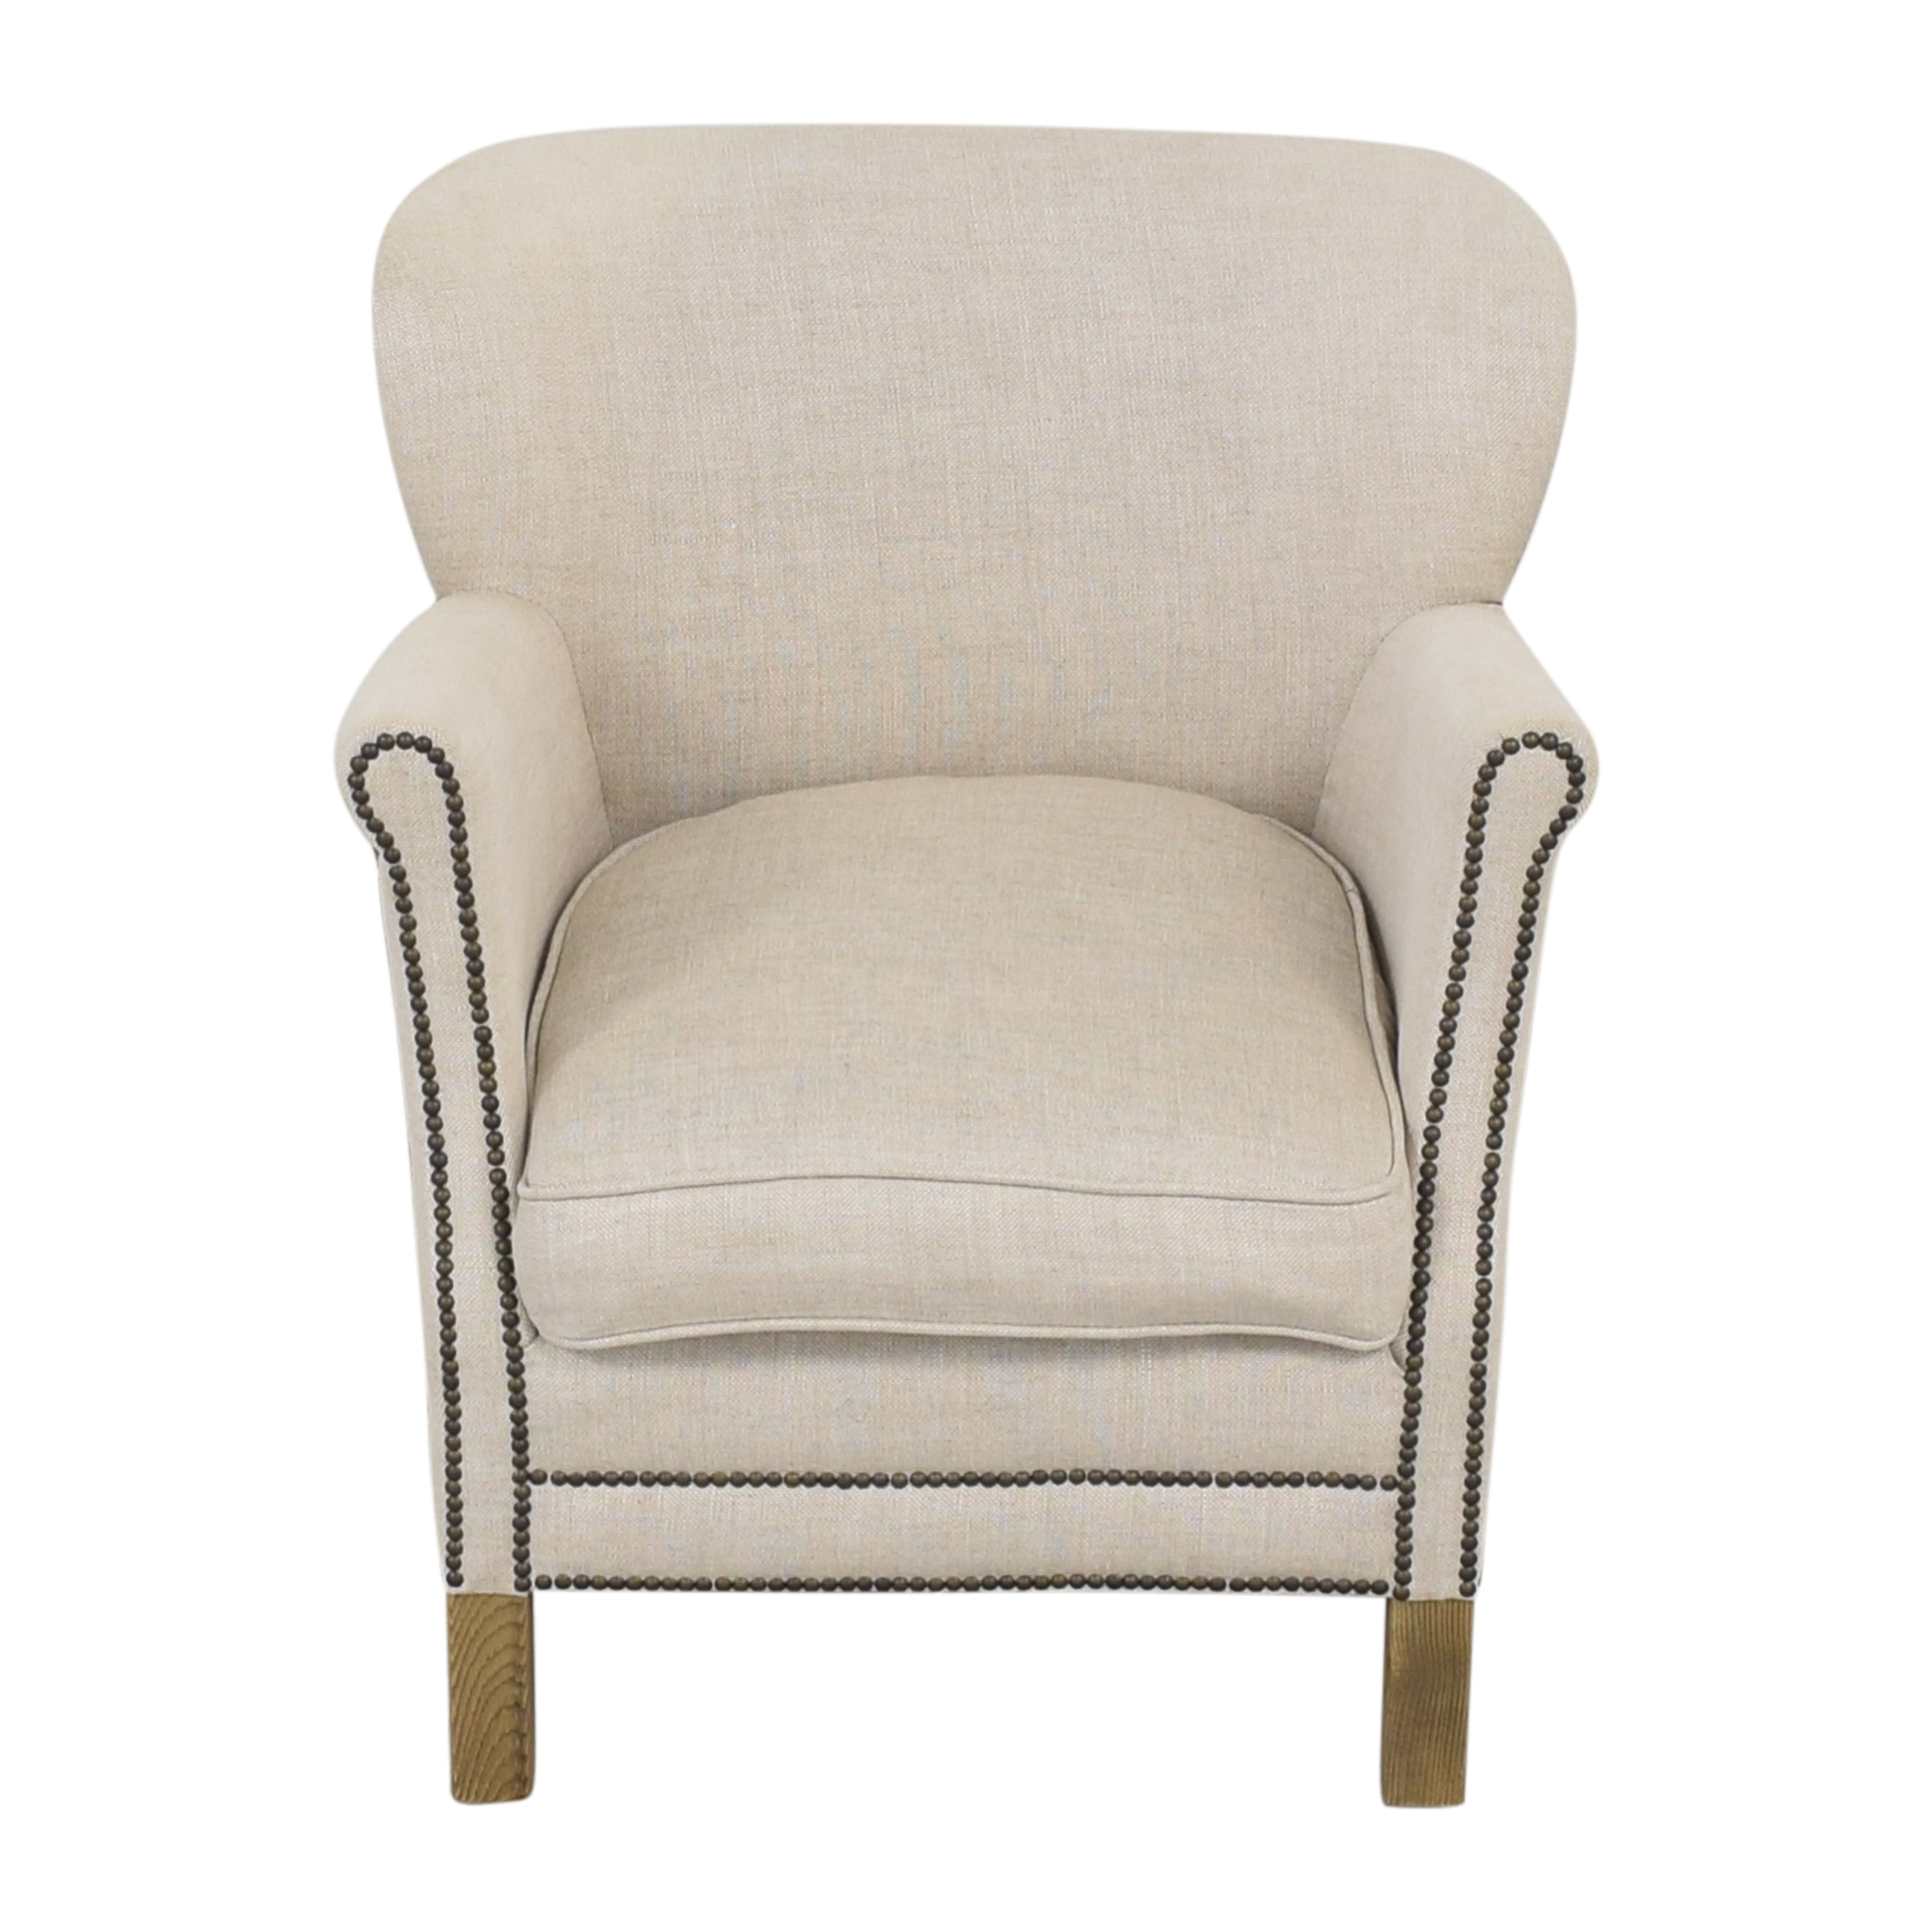 Restoration Hardware Restoration Hardware Professors Chair with Nailheads